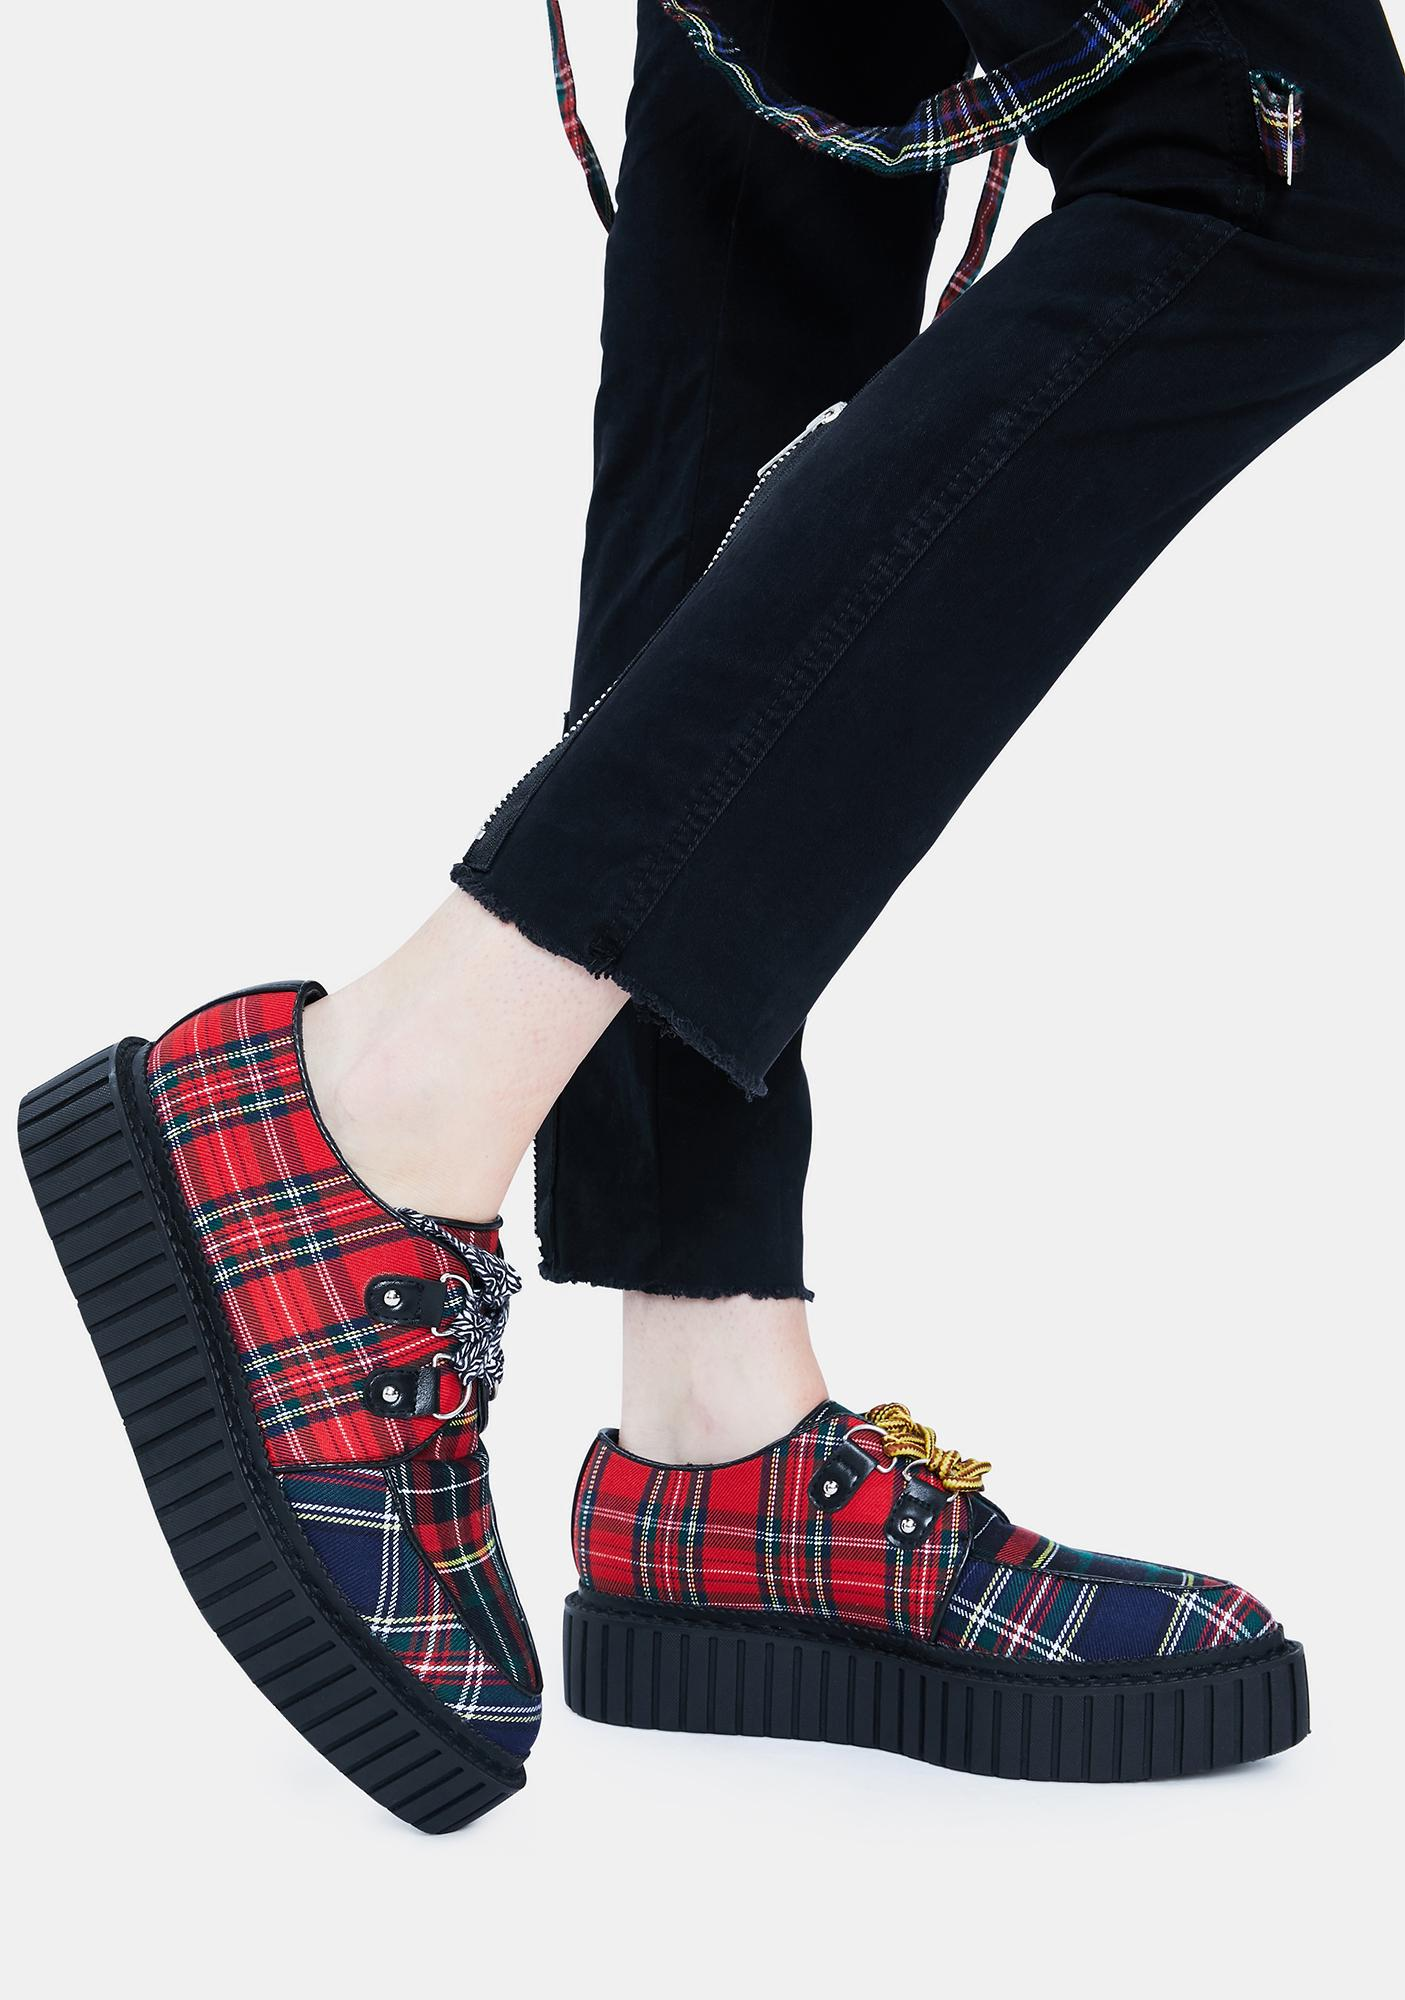 Current Mood Riot Squad Mixed Plaid Creepers